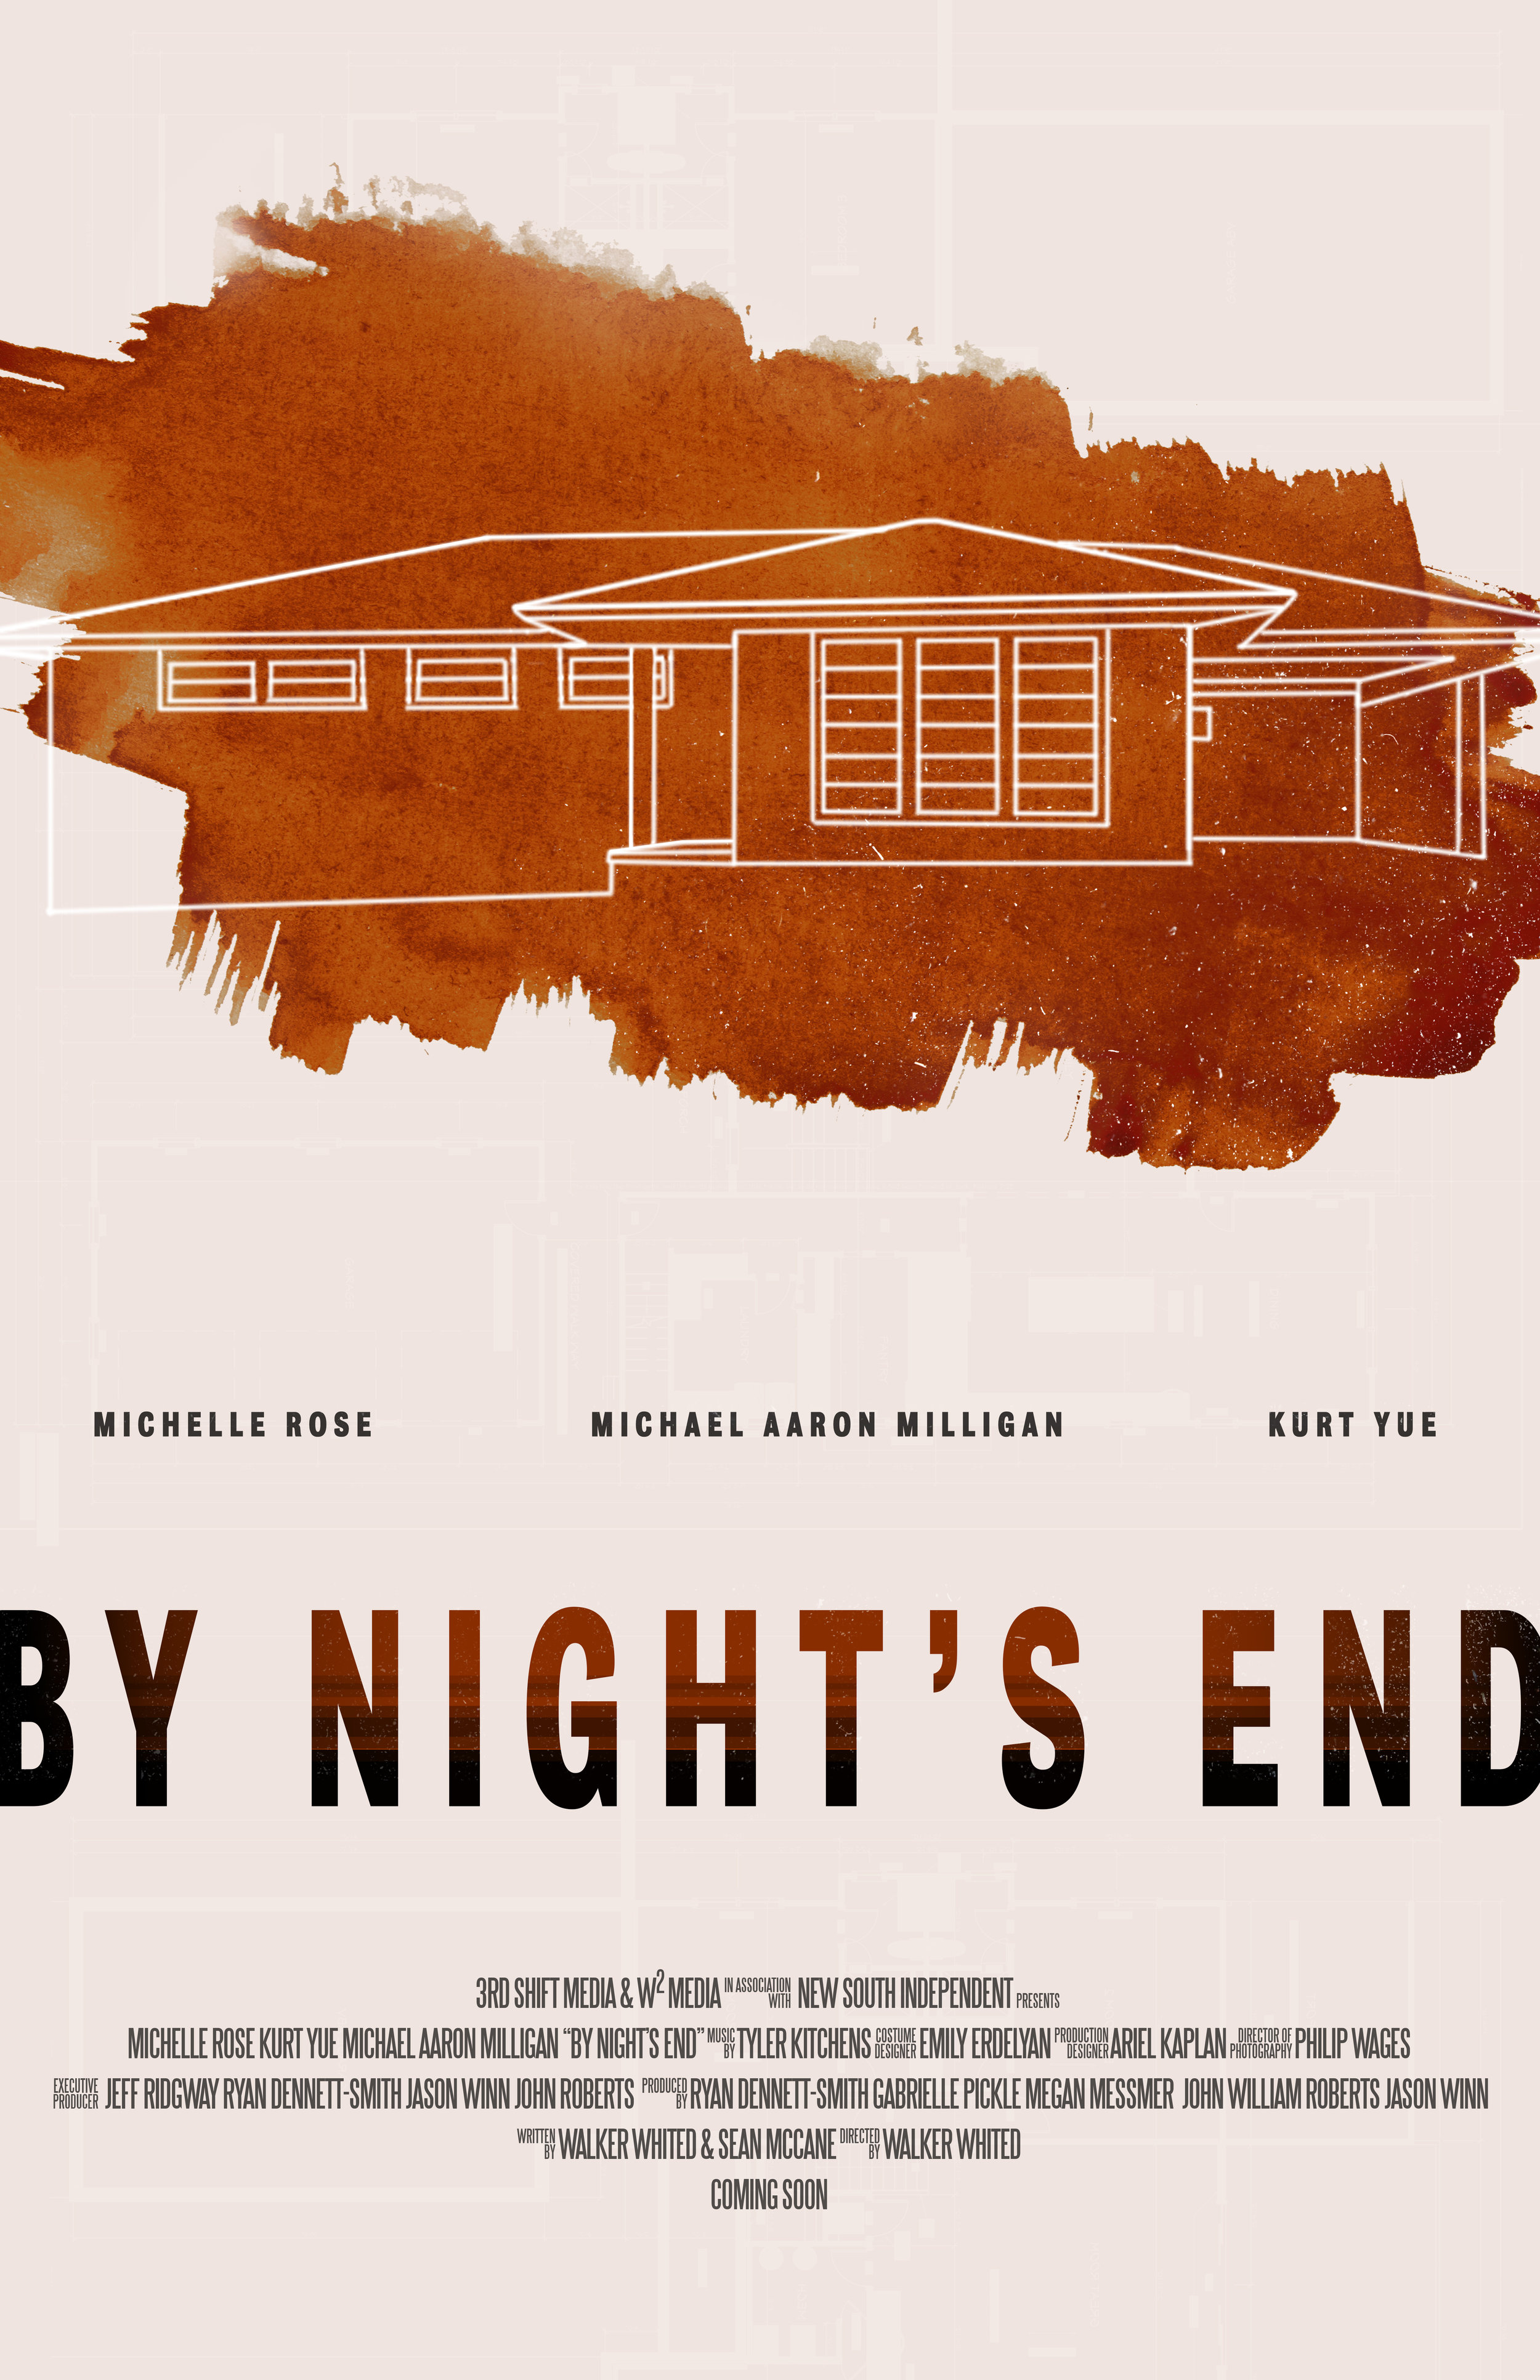 BY-NIGHTS-END-POSTER.jpg